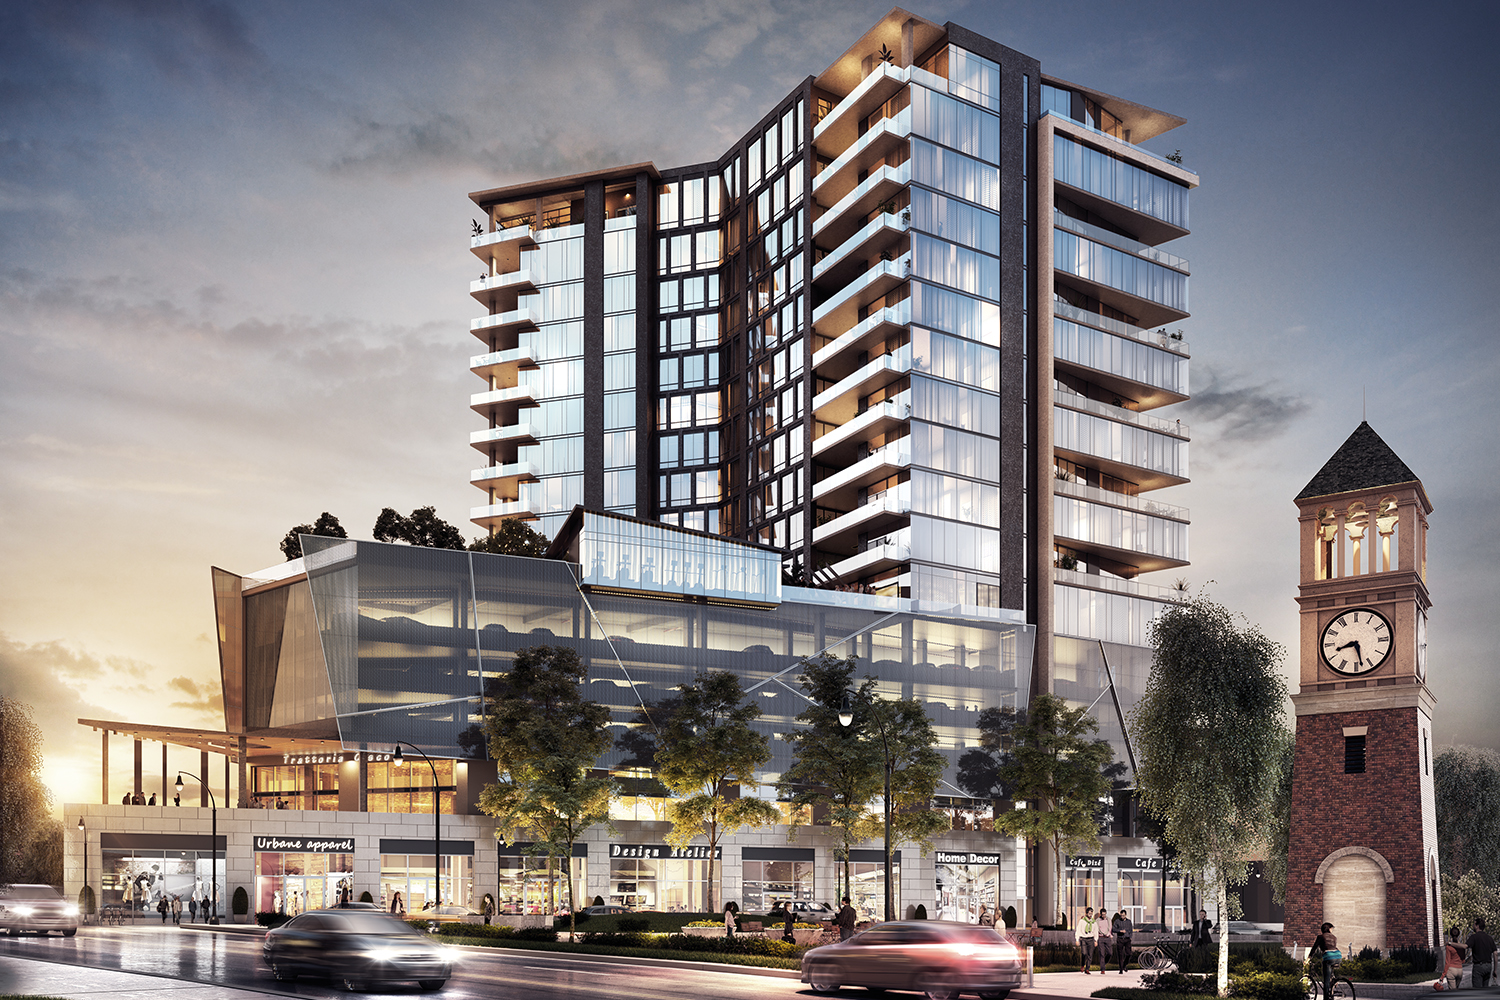 Property Branding for The Charles - Rendering 1